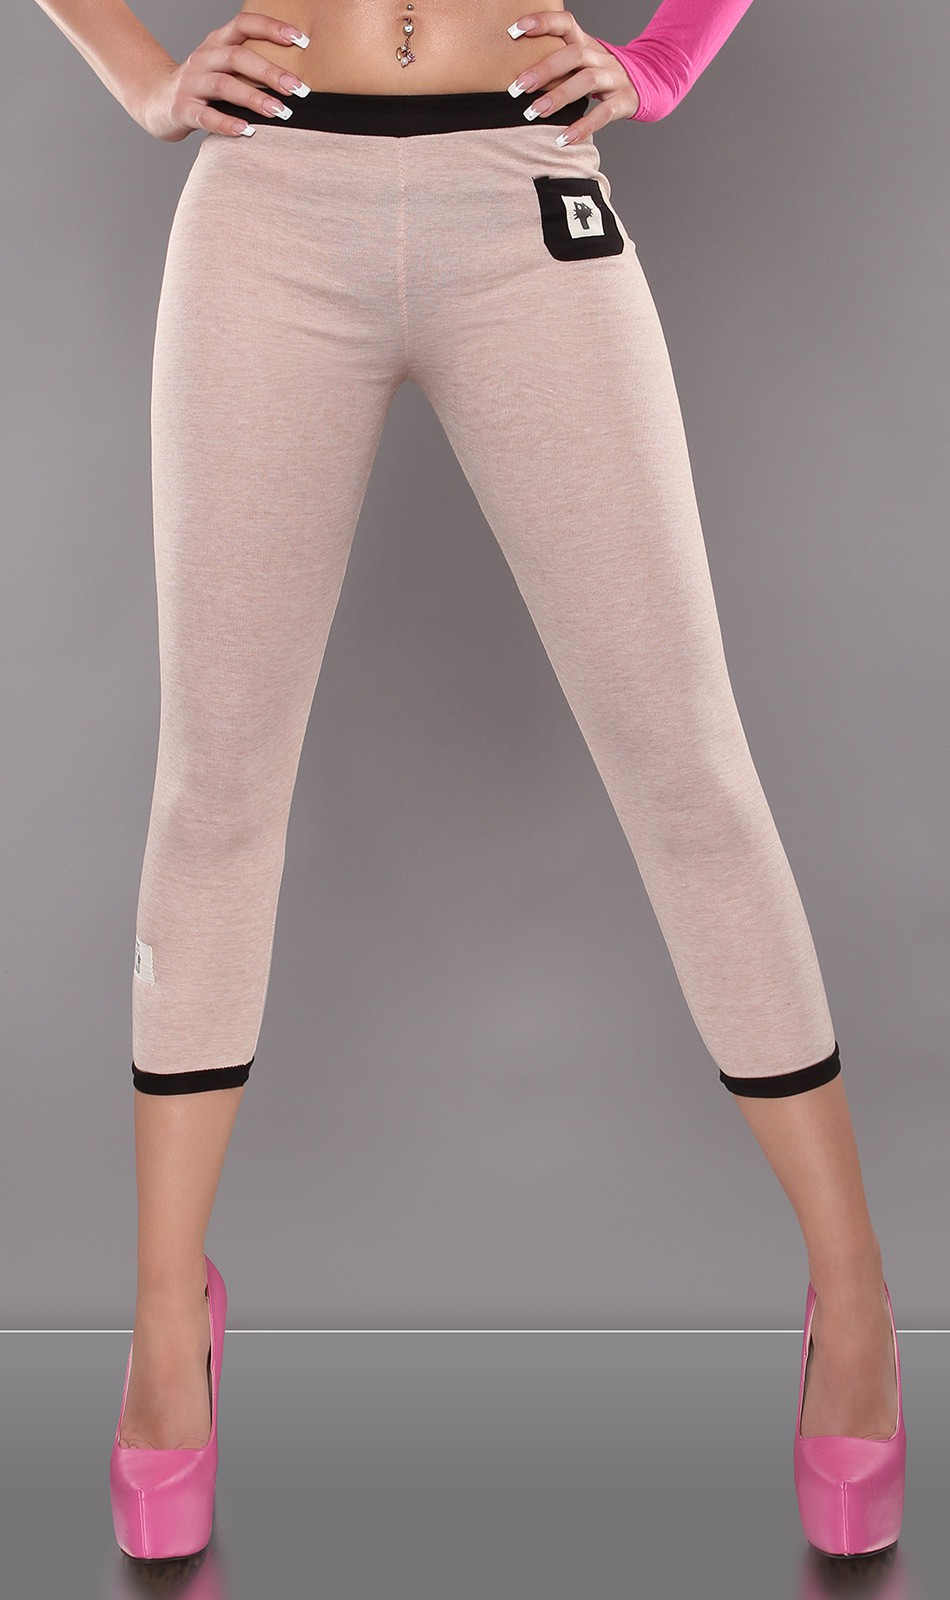 7/8 capri leggings - Bézs (S/M, L/XL)